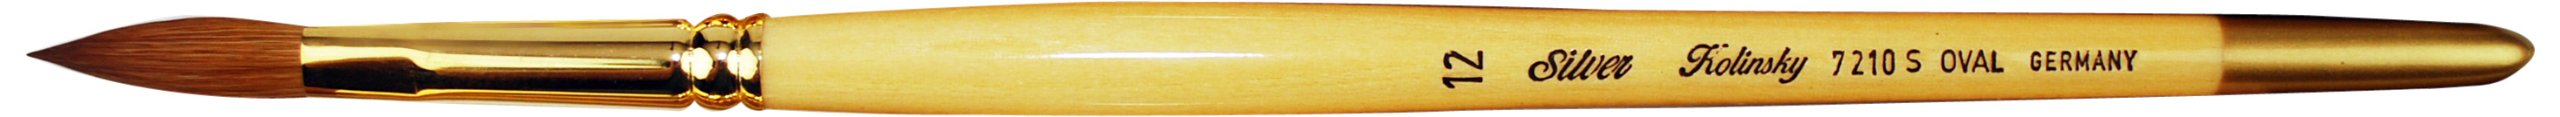 Silver Brush 7210S-12 Silver Kolinsky Sable Short Handle Excellent Quality Brush, Oval, Size 12 by Silver Brush Limited